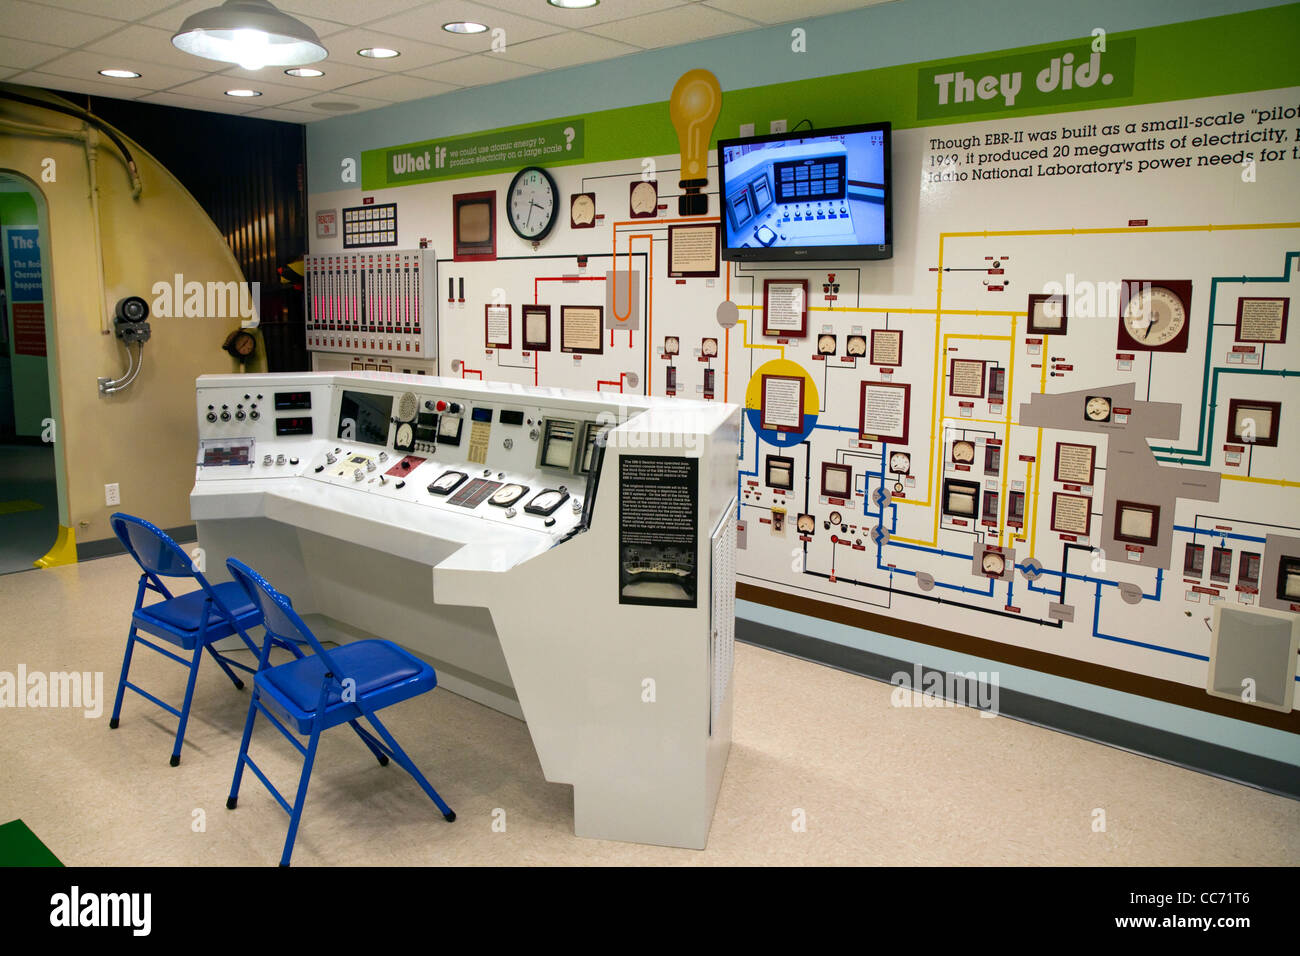 Interior of the EBR-I decommissioned research nuclear reactor atomic museum located in the desert near Arco, Idaho, - Stock Image